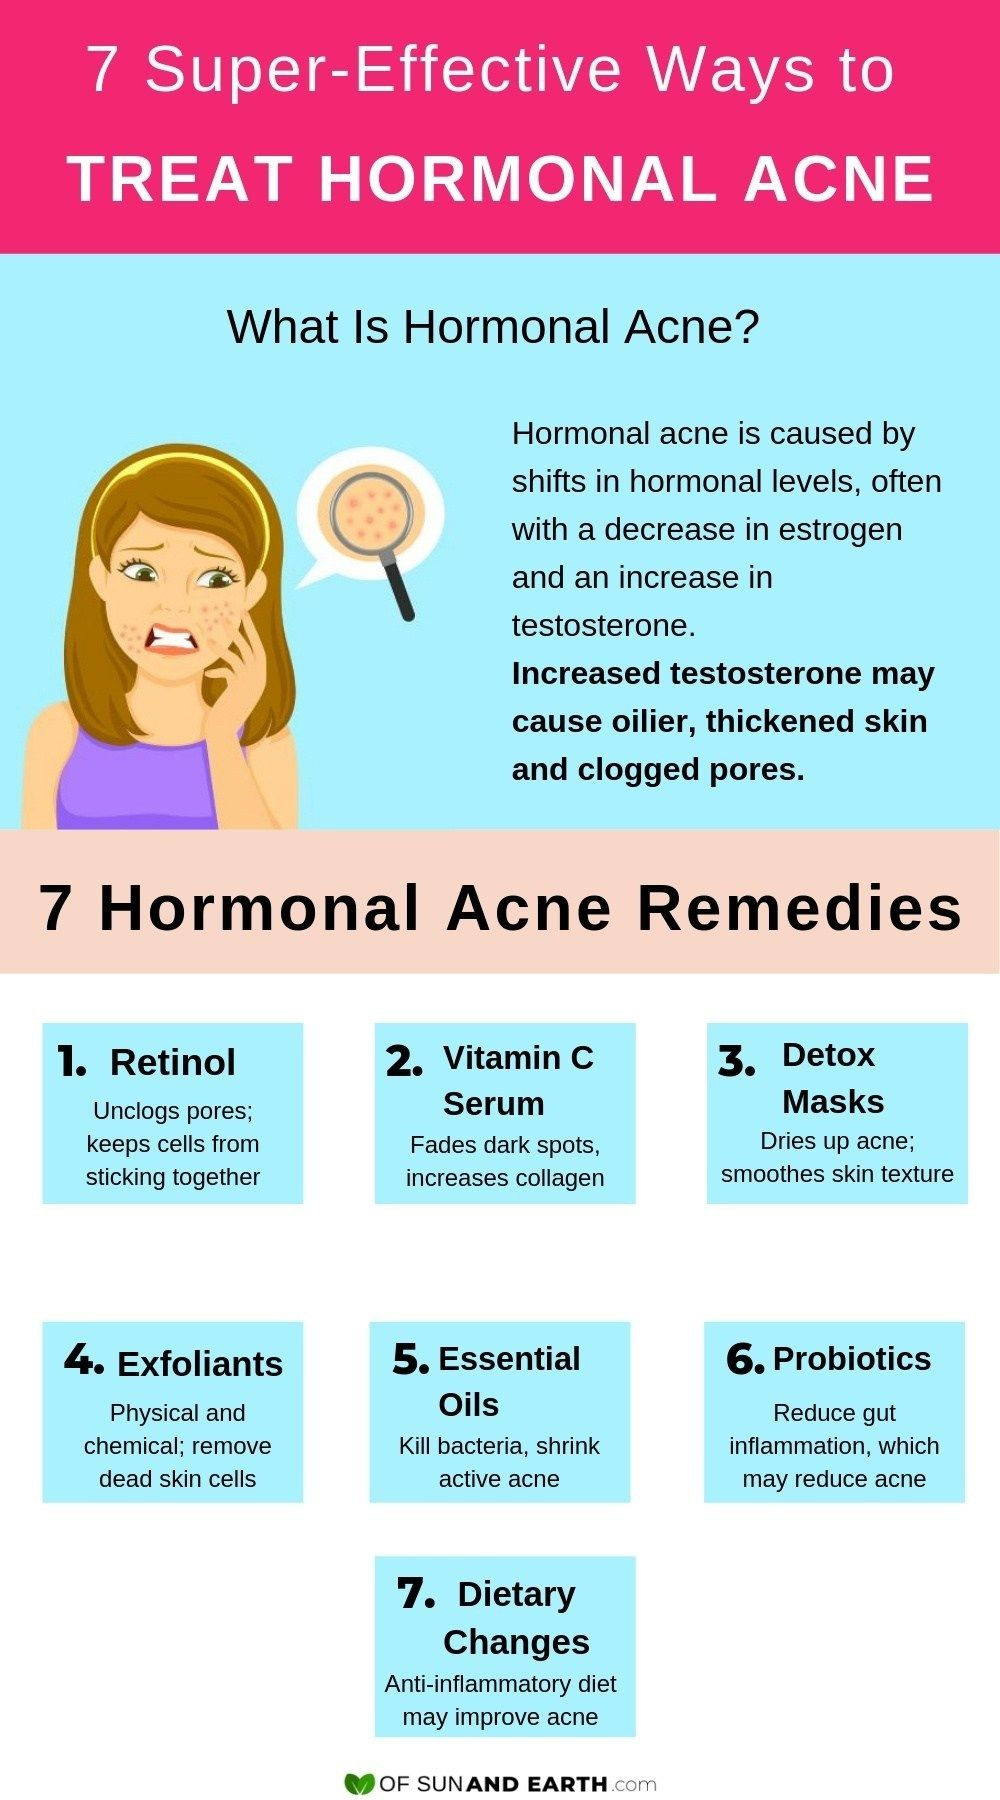 7 Super-Effective Ways to Treat Your Hormonal Acne - Of Sun and Earth